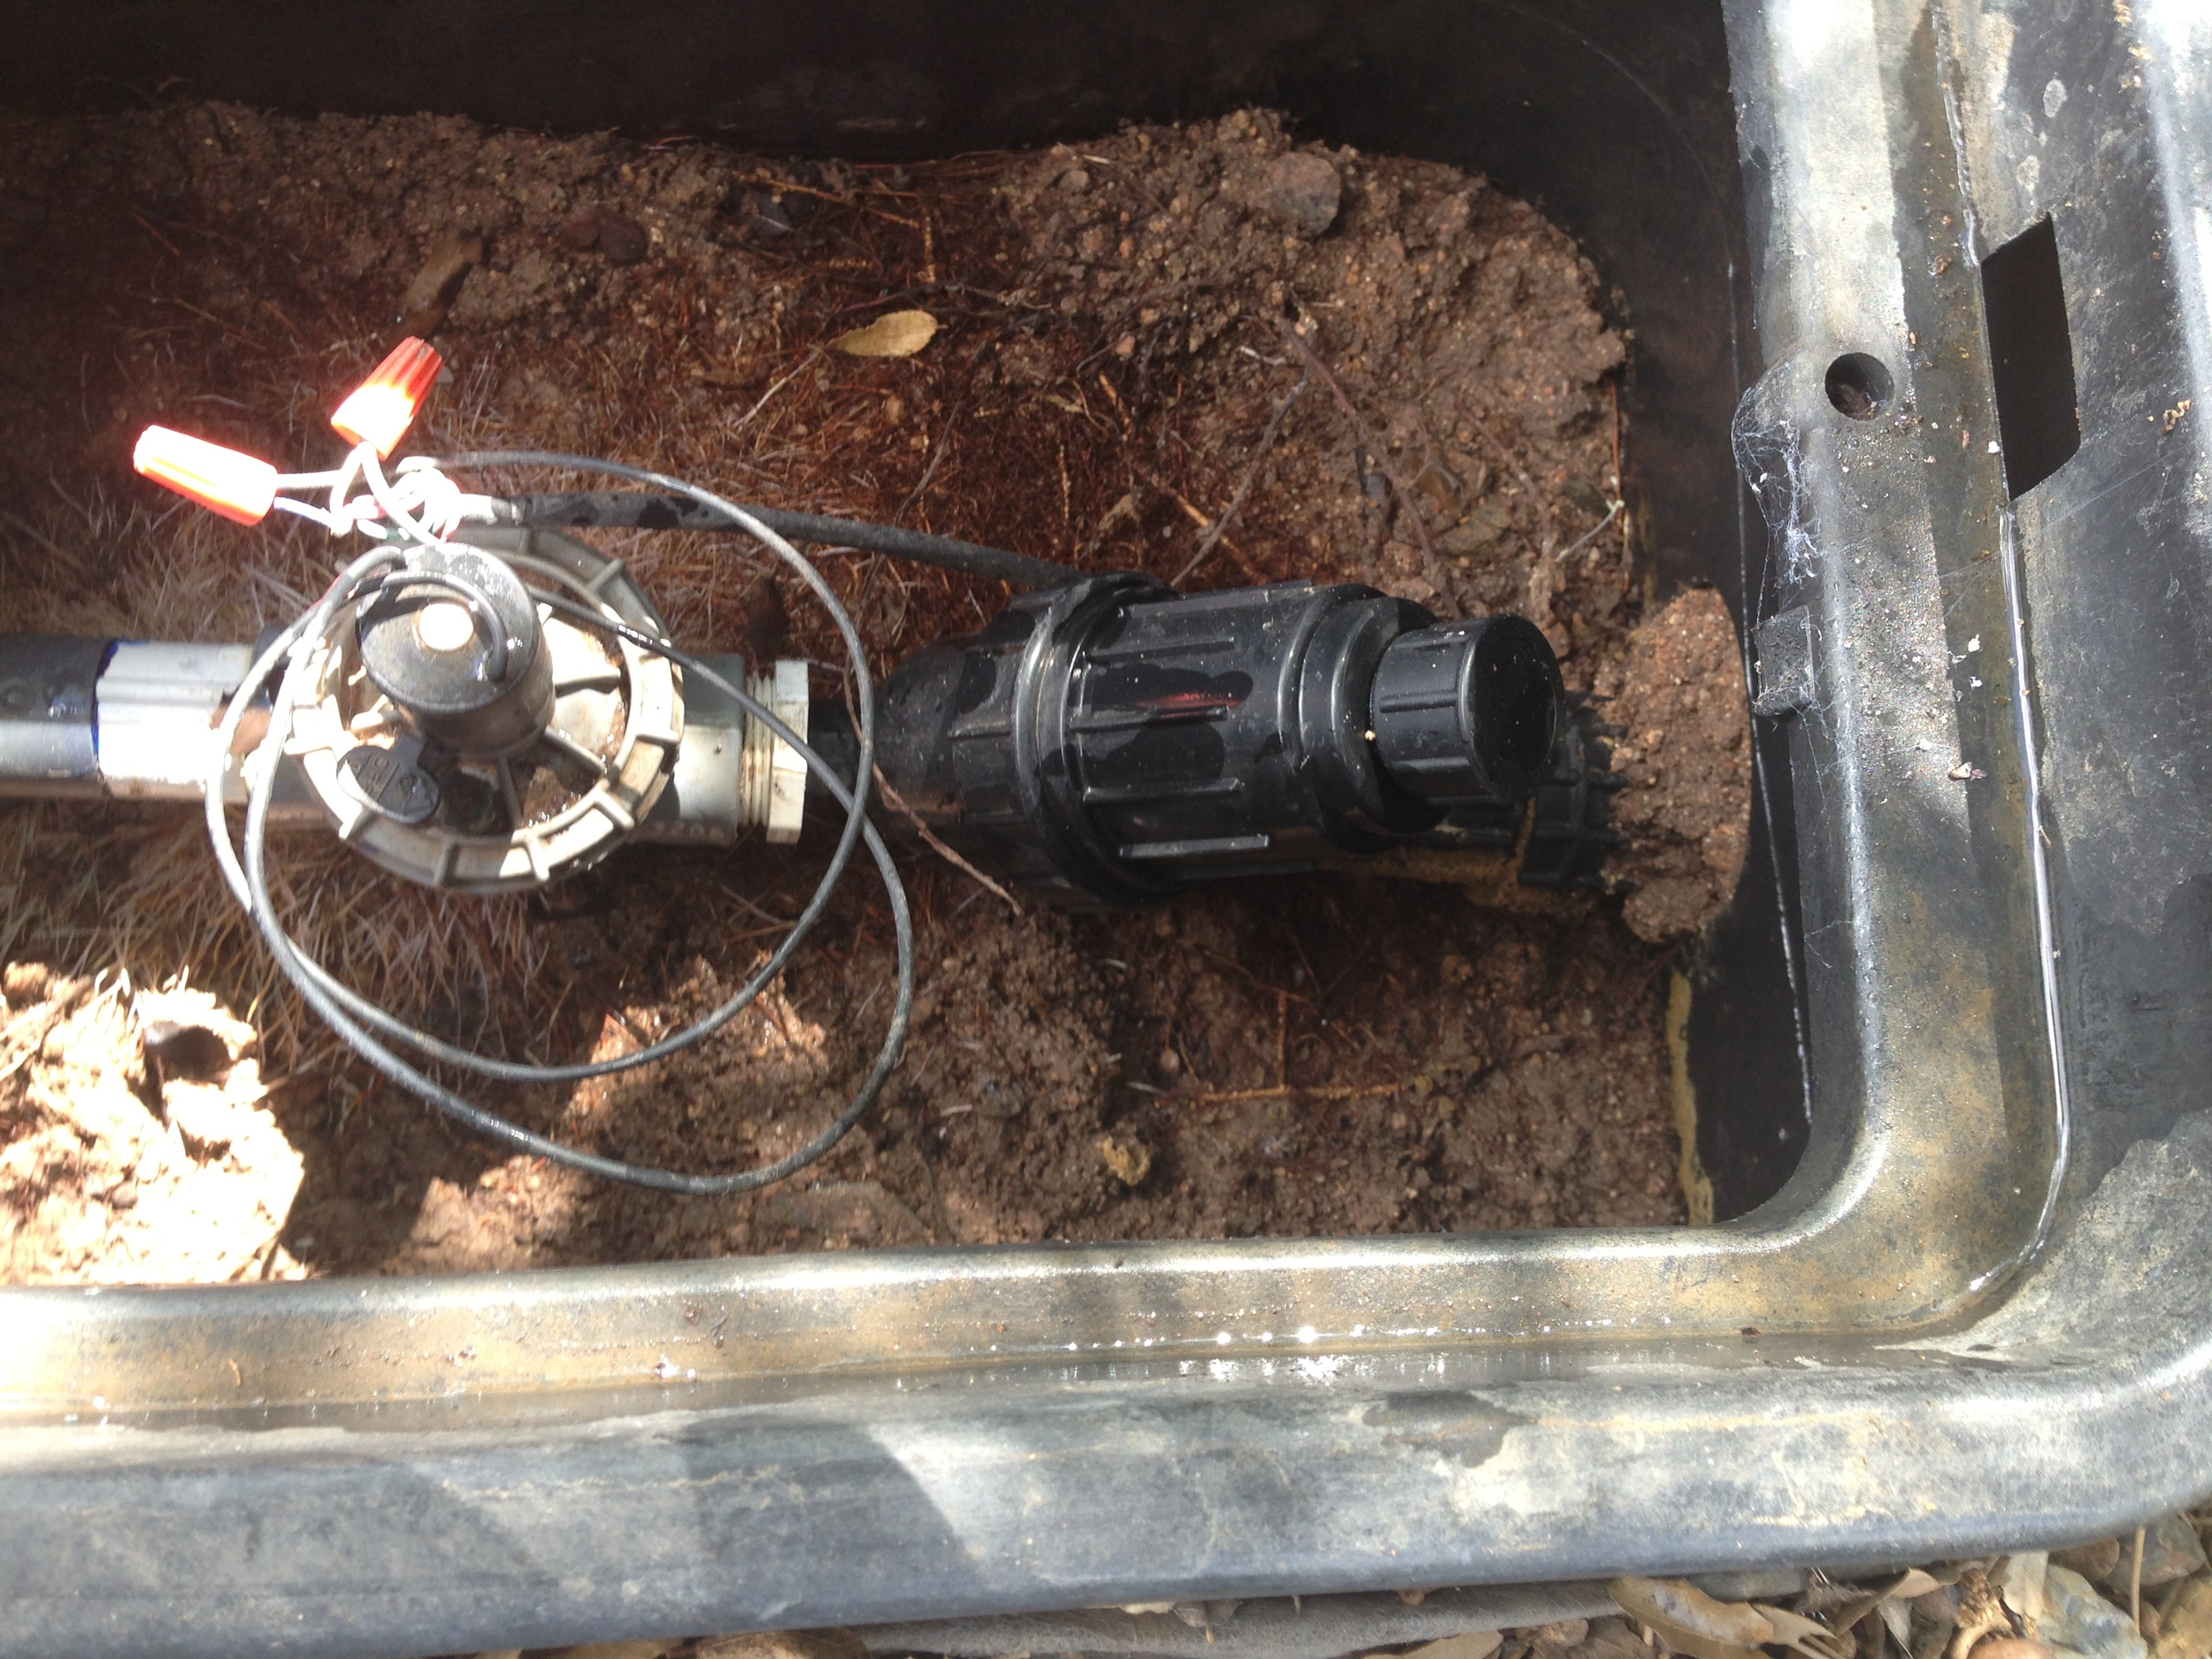 Irrigation valve and unfortunately tree roots